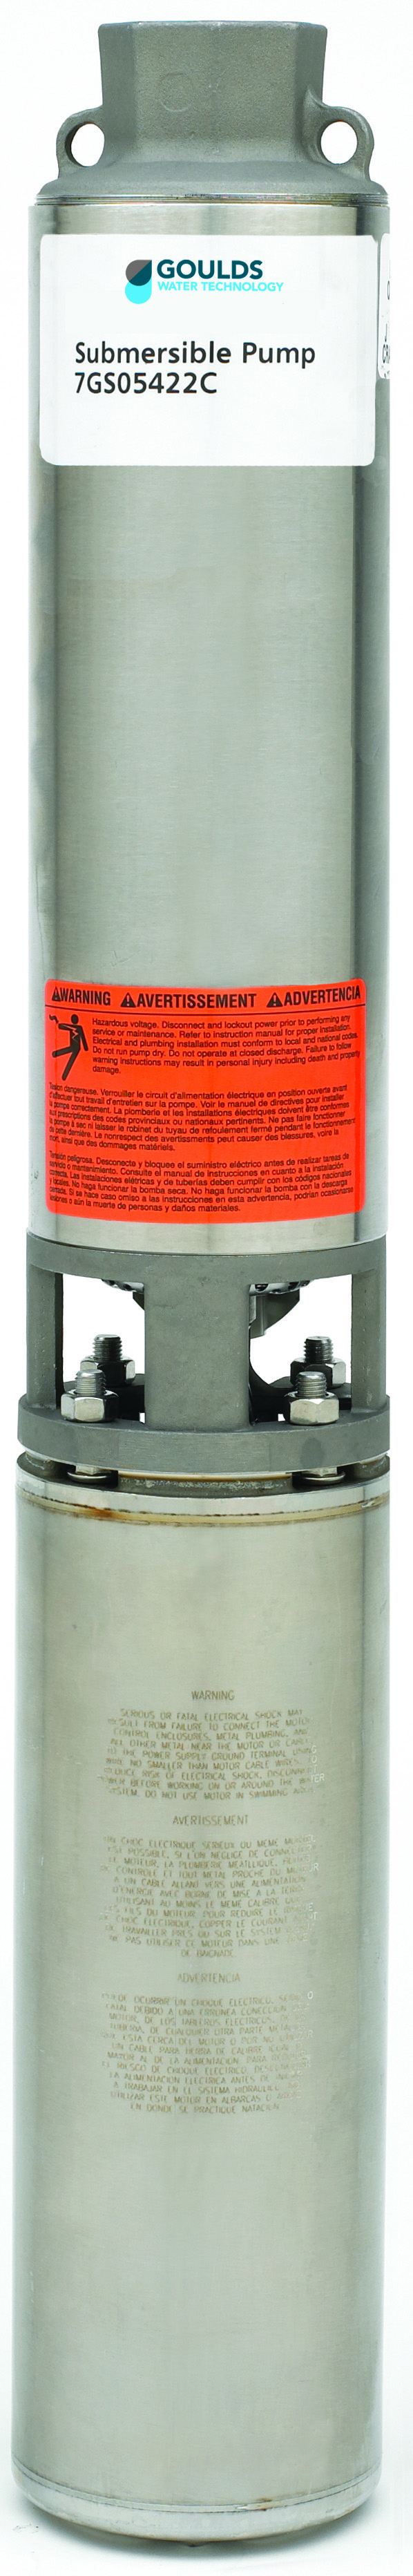 GS Pump 5-25 Range (1/2 to 5 HP) Standard Capacity